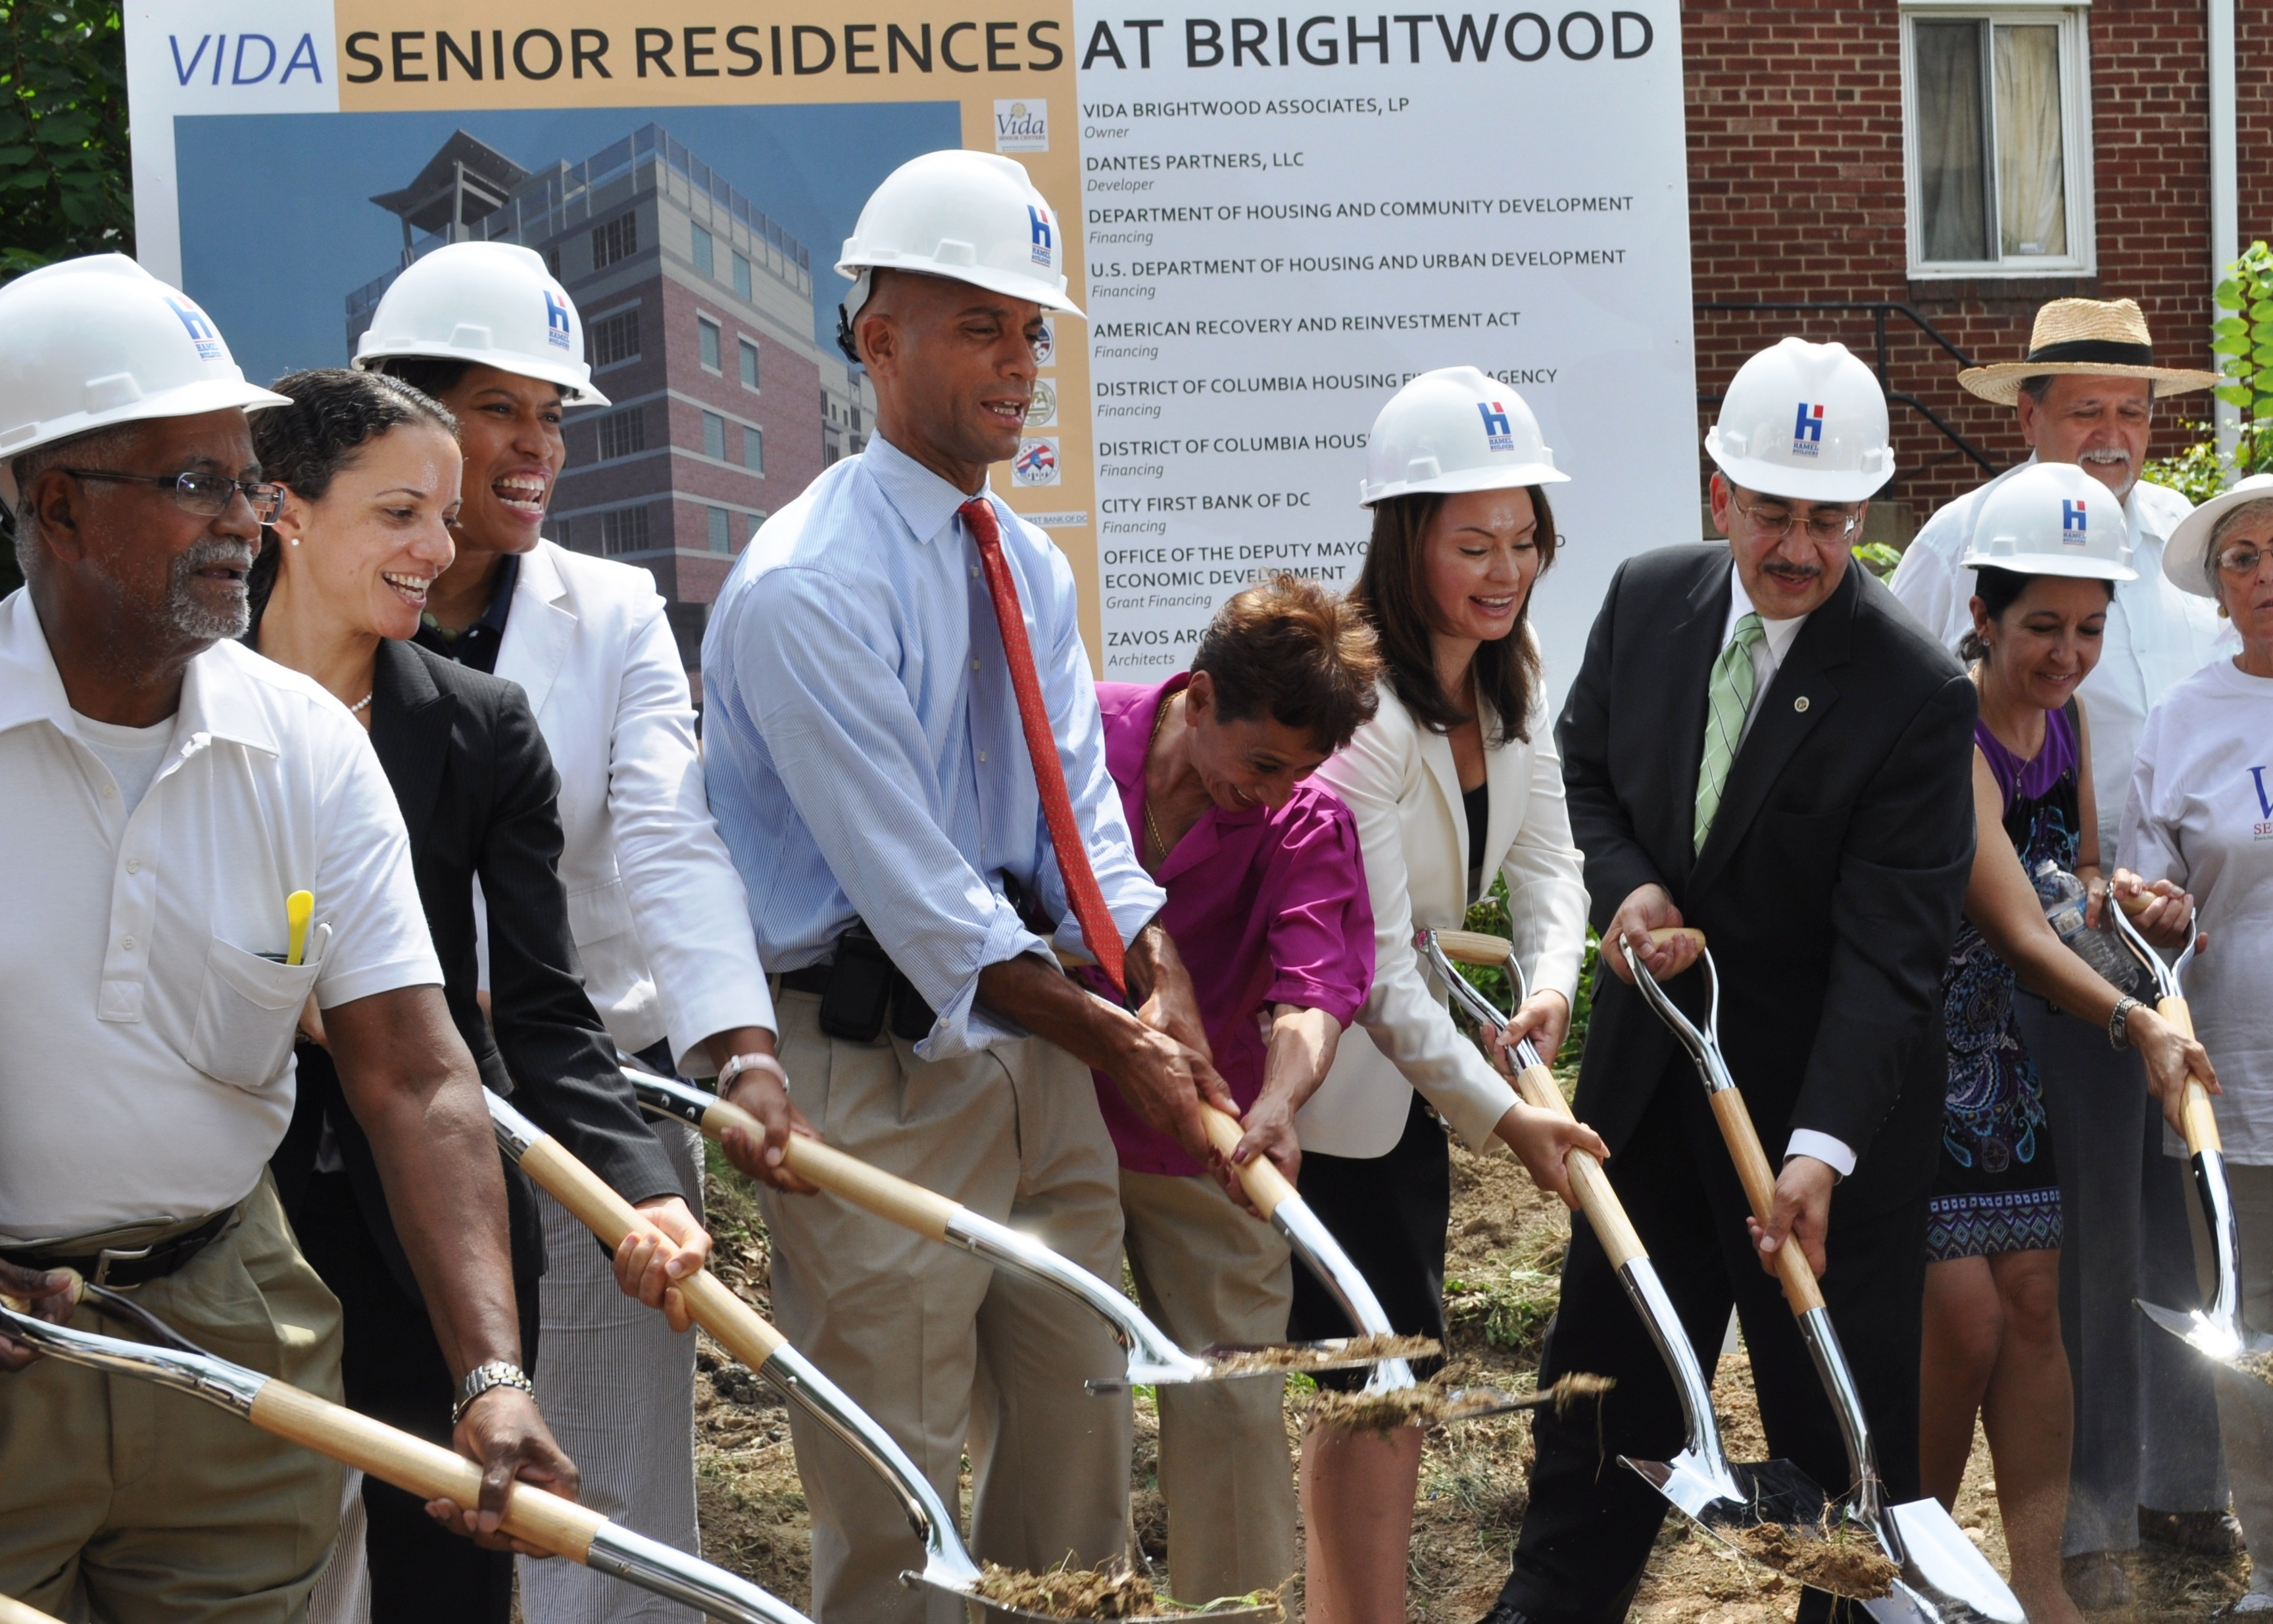 U.S. Treasurer Rosie Rios and D.C. Mayor Adrian Fenty Break Ground on an Affordable Housing Development